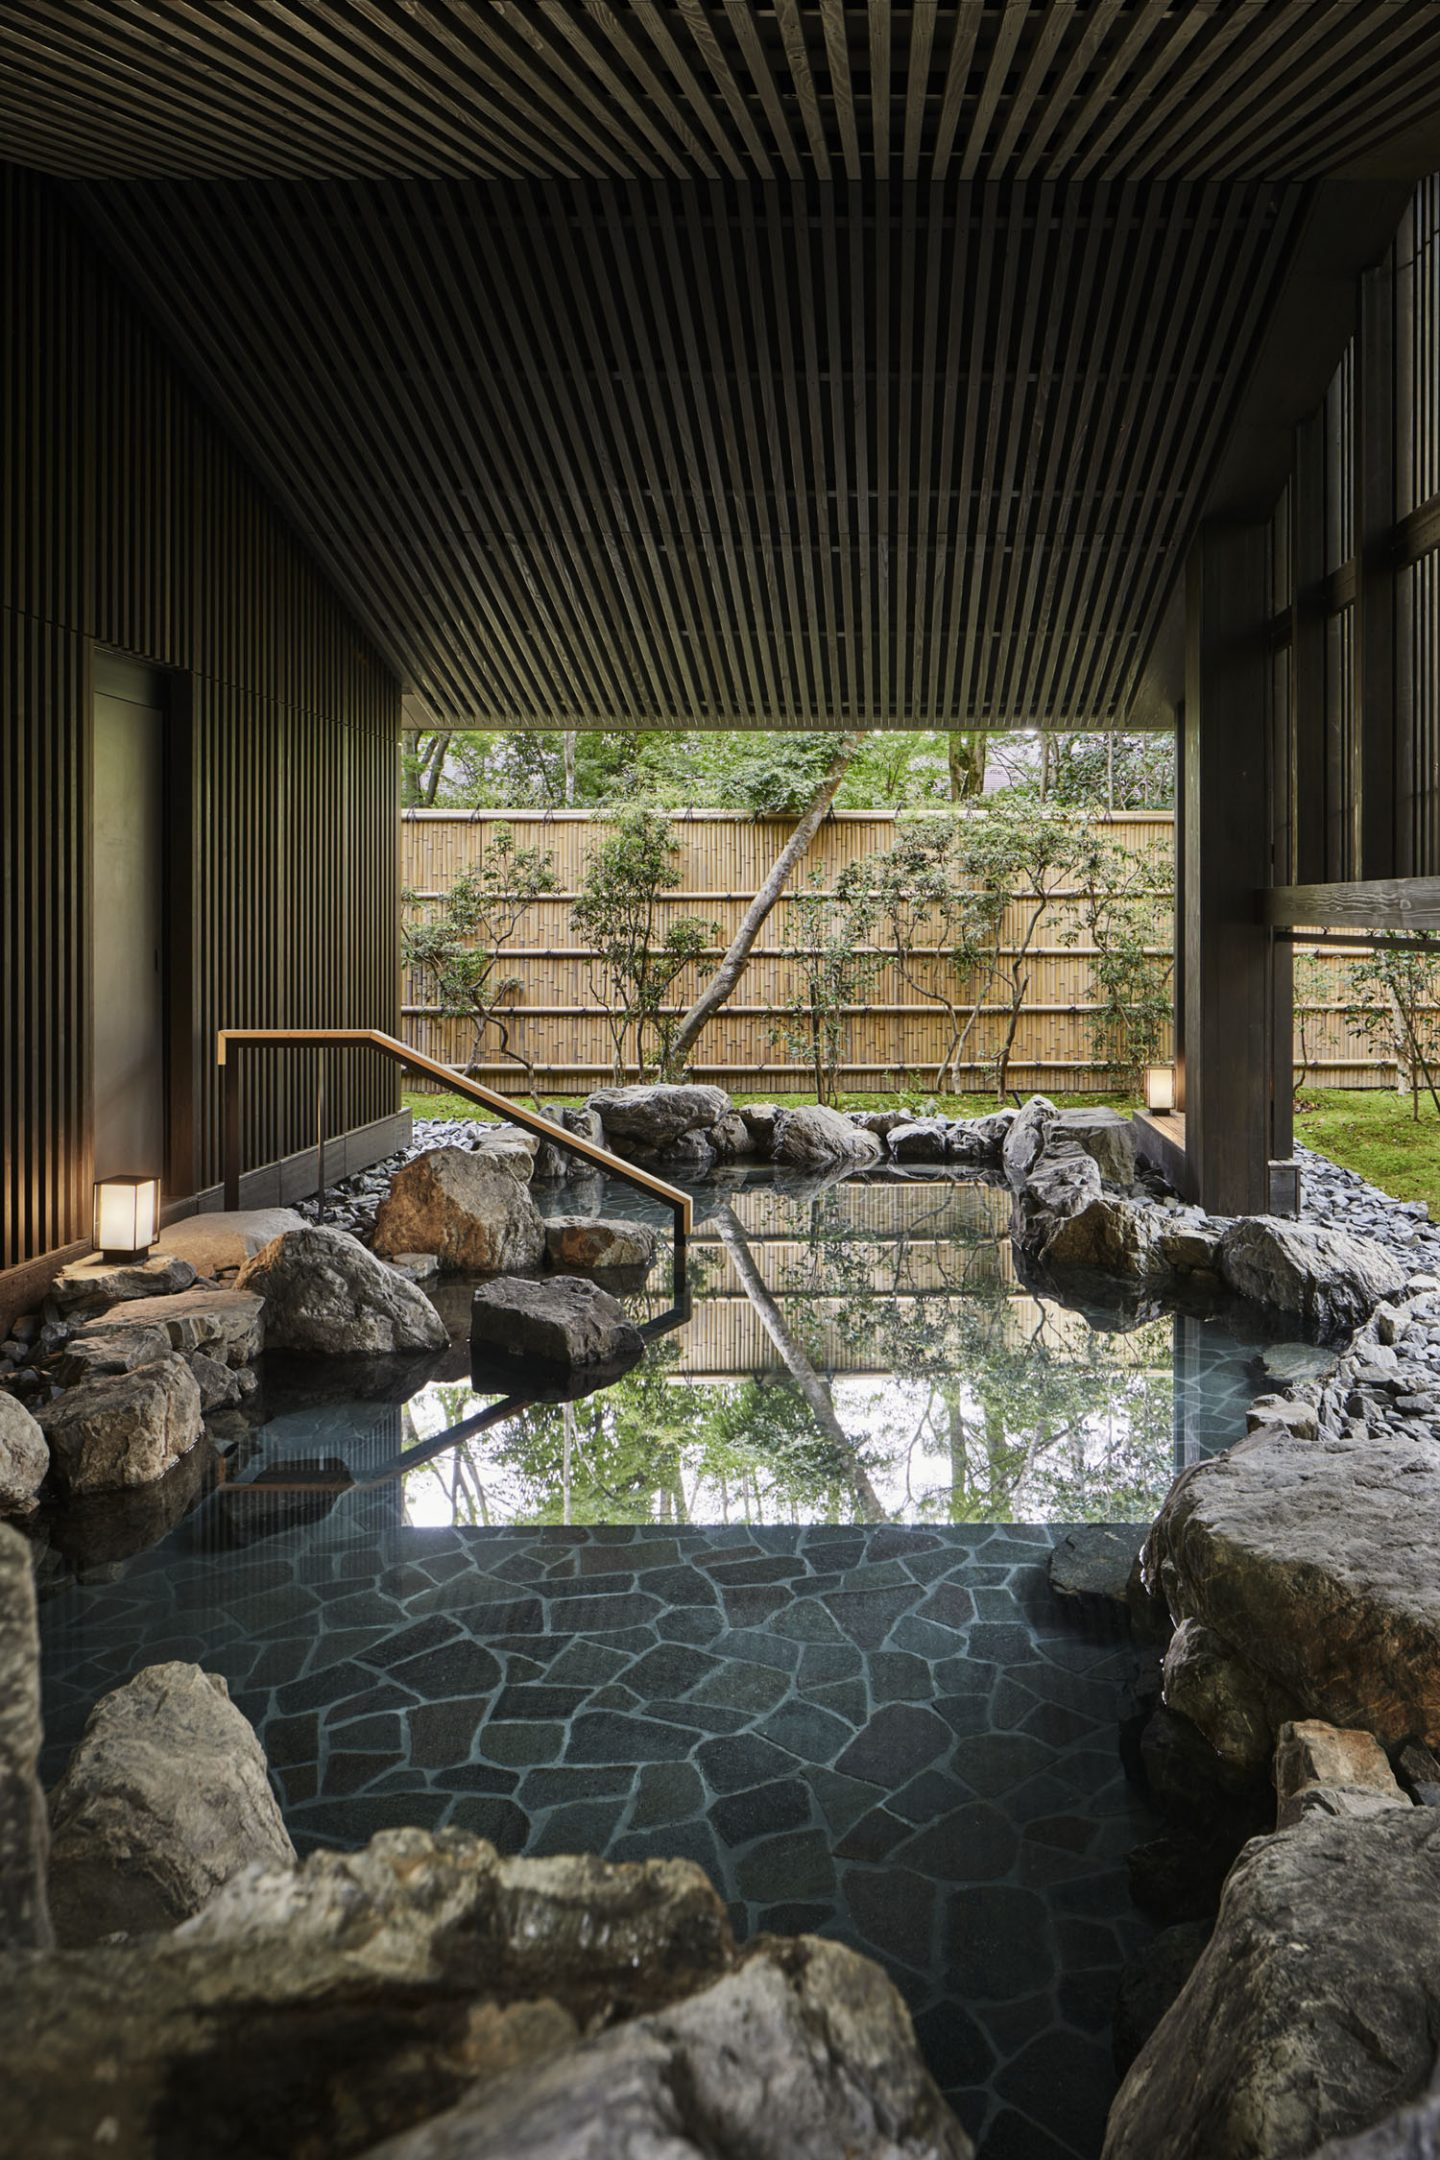 Aman Kyoto, Japan - Aman Spa - Outdoor Onsen